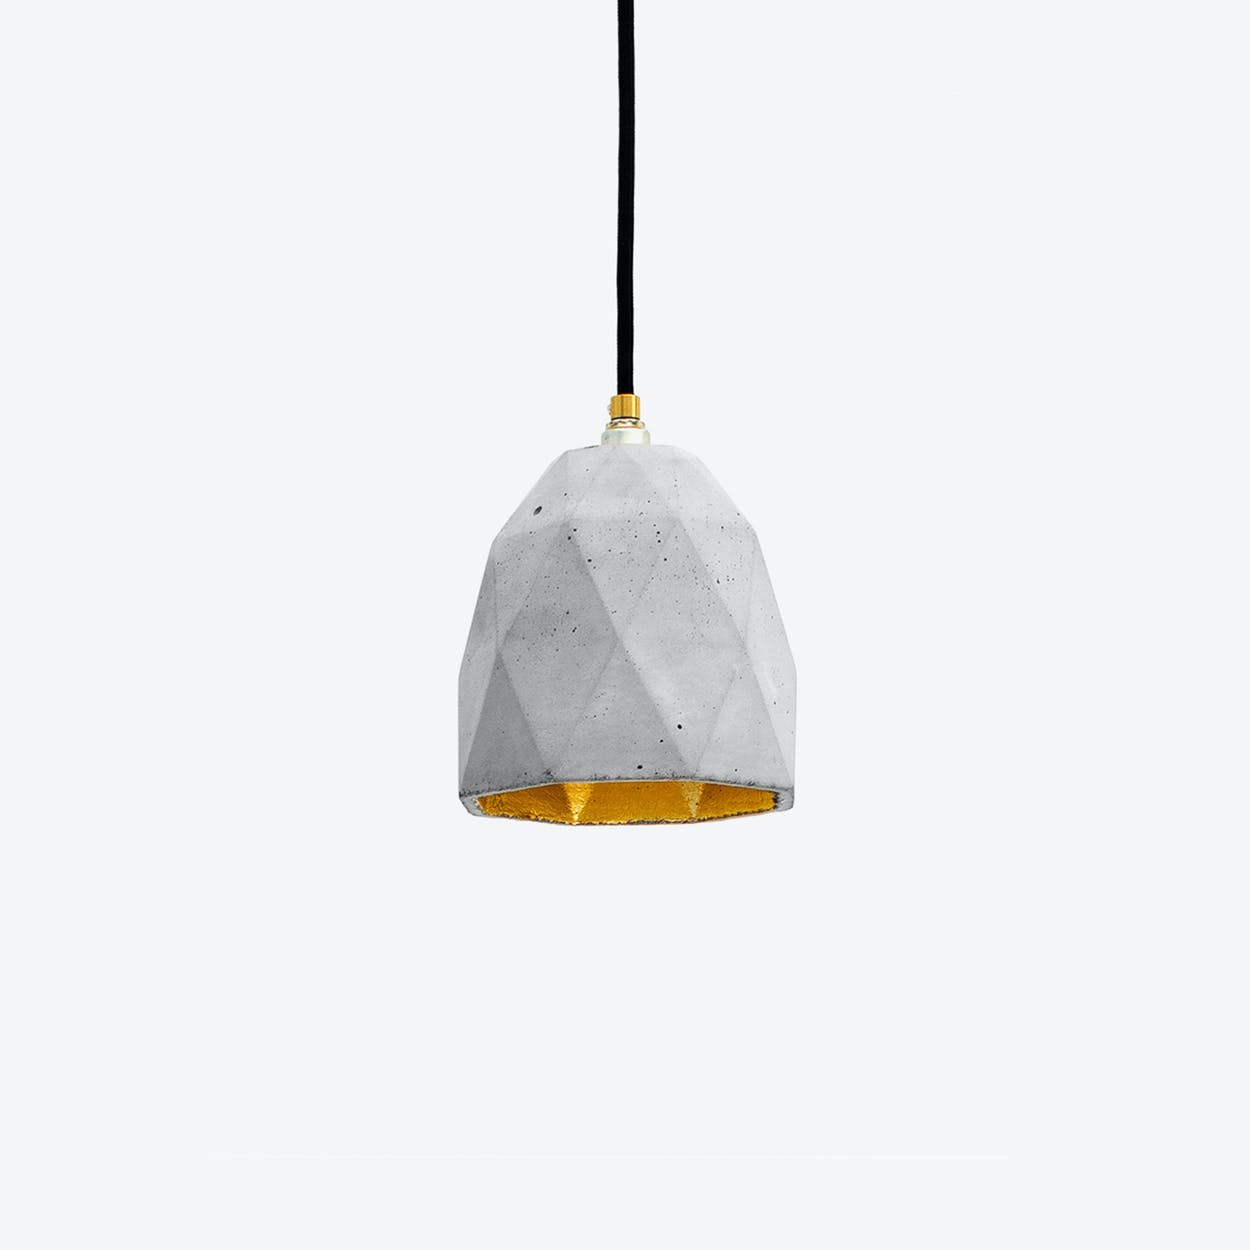 Concrete Pendant Light Triangle T1 in Light Grey and Gold